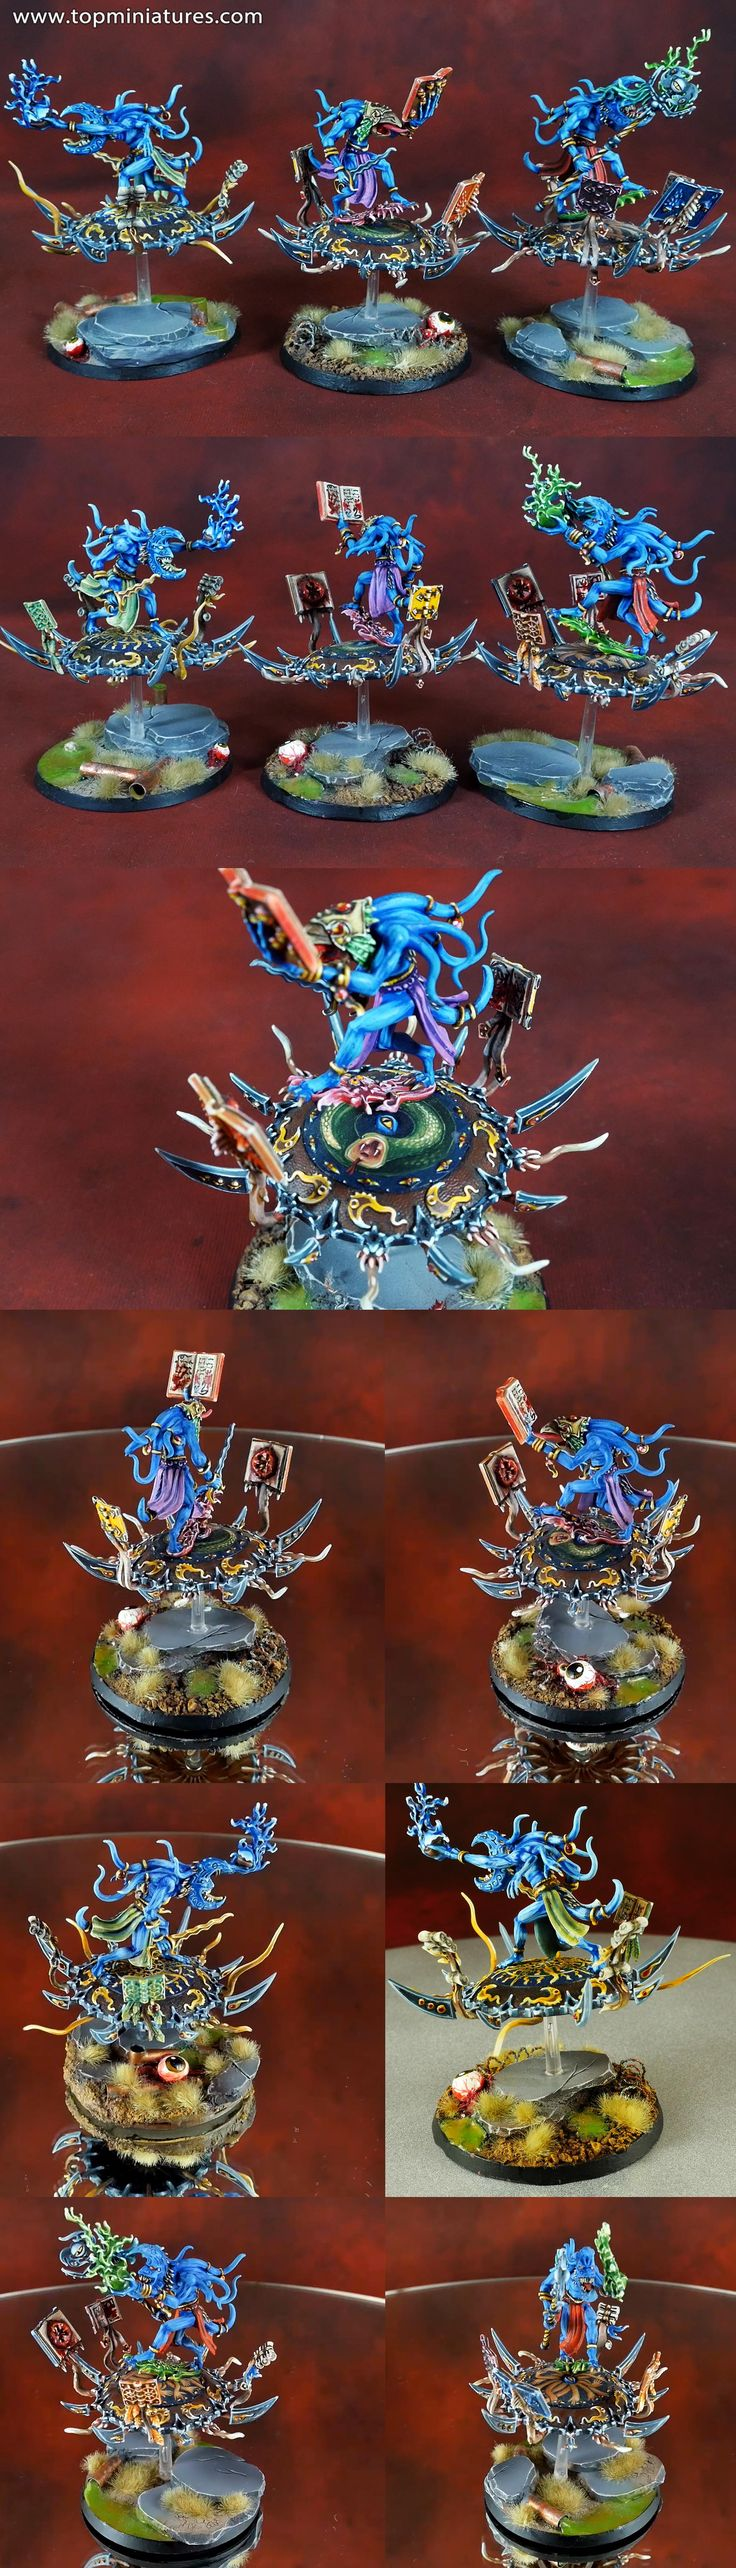 Warhammer 40k chaos daemons heralds of tzeentch on disc